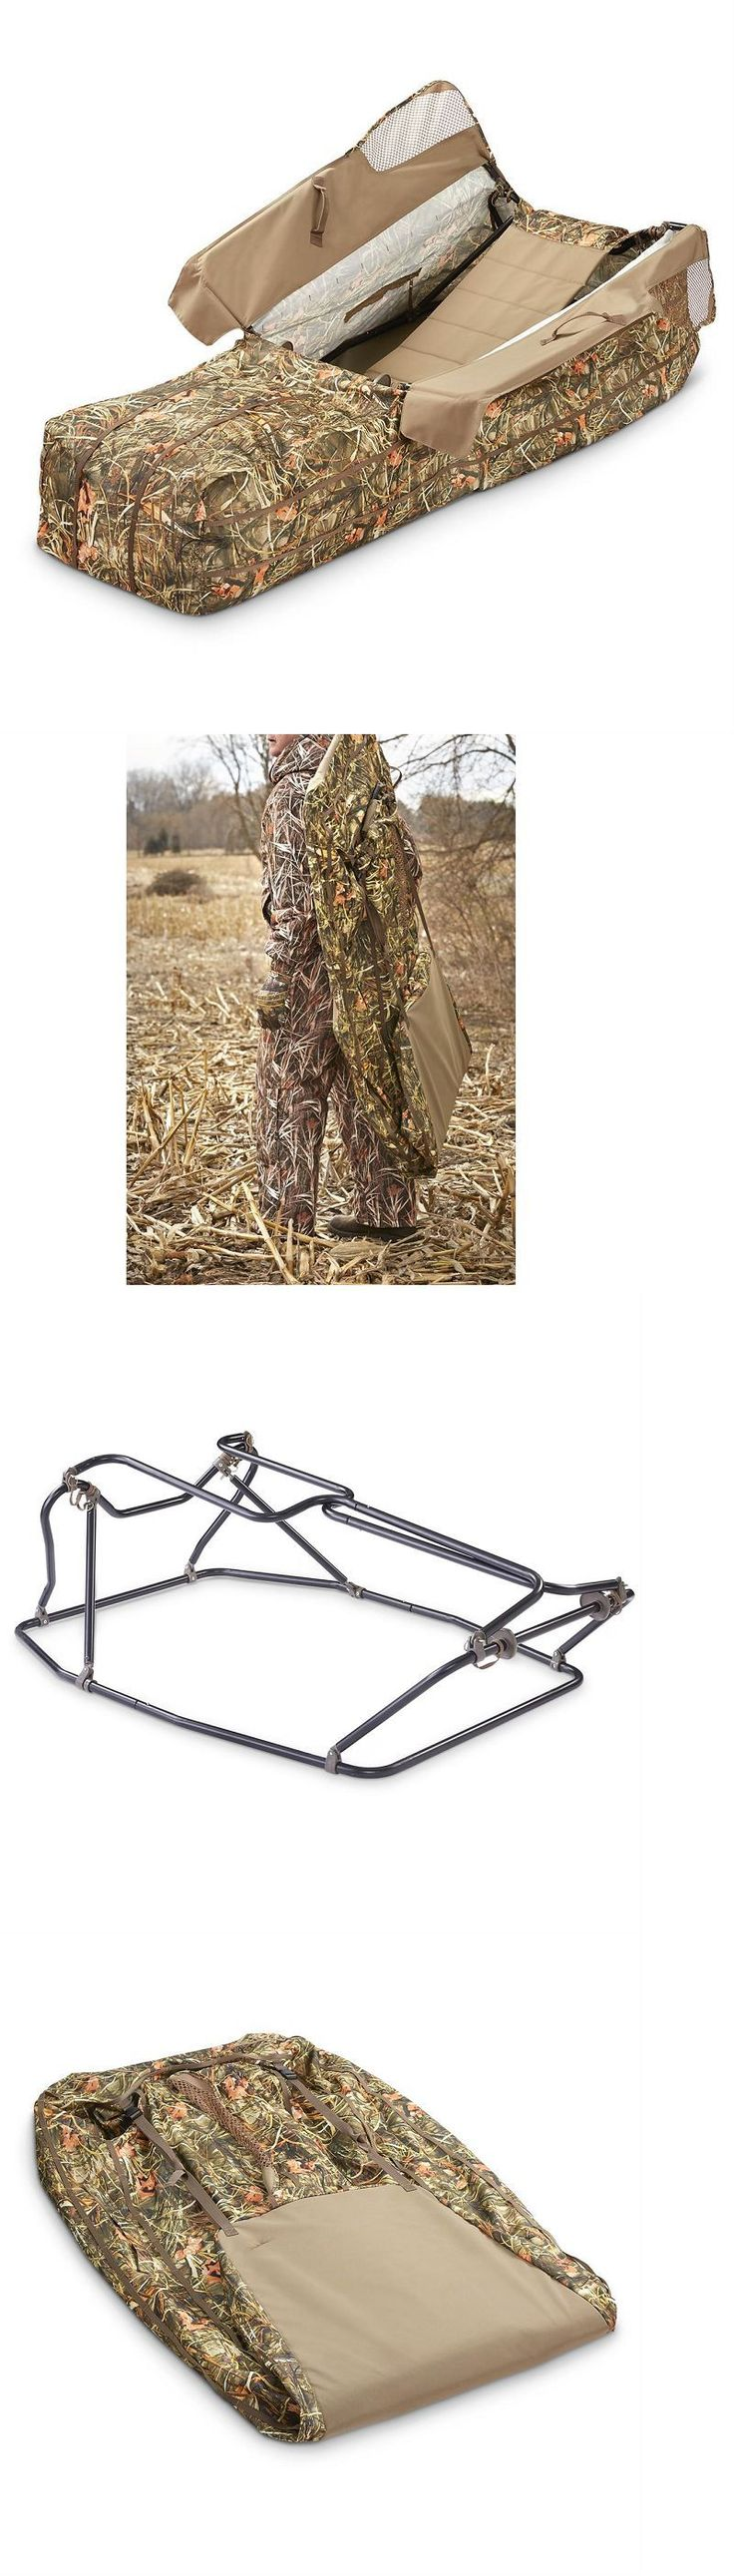 Blinds 177910: Layout Duck Blind Corn Field Camo Hay Straw Pop Up Hunting Geese Waterfowl Birds -> BUY IT NOW ONLY: $189.95 on eBay!